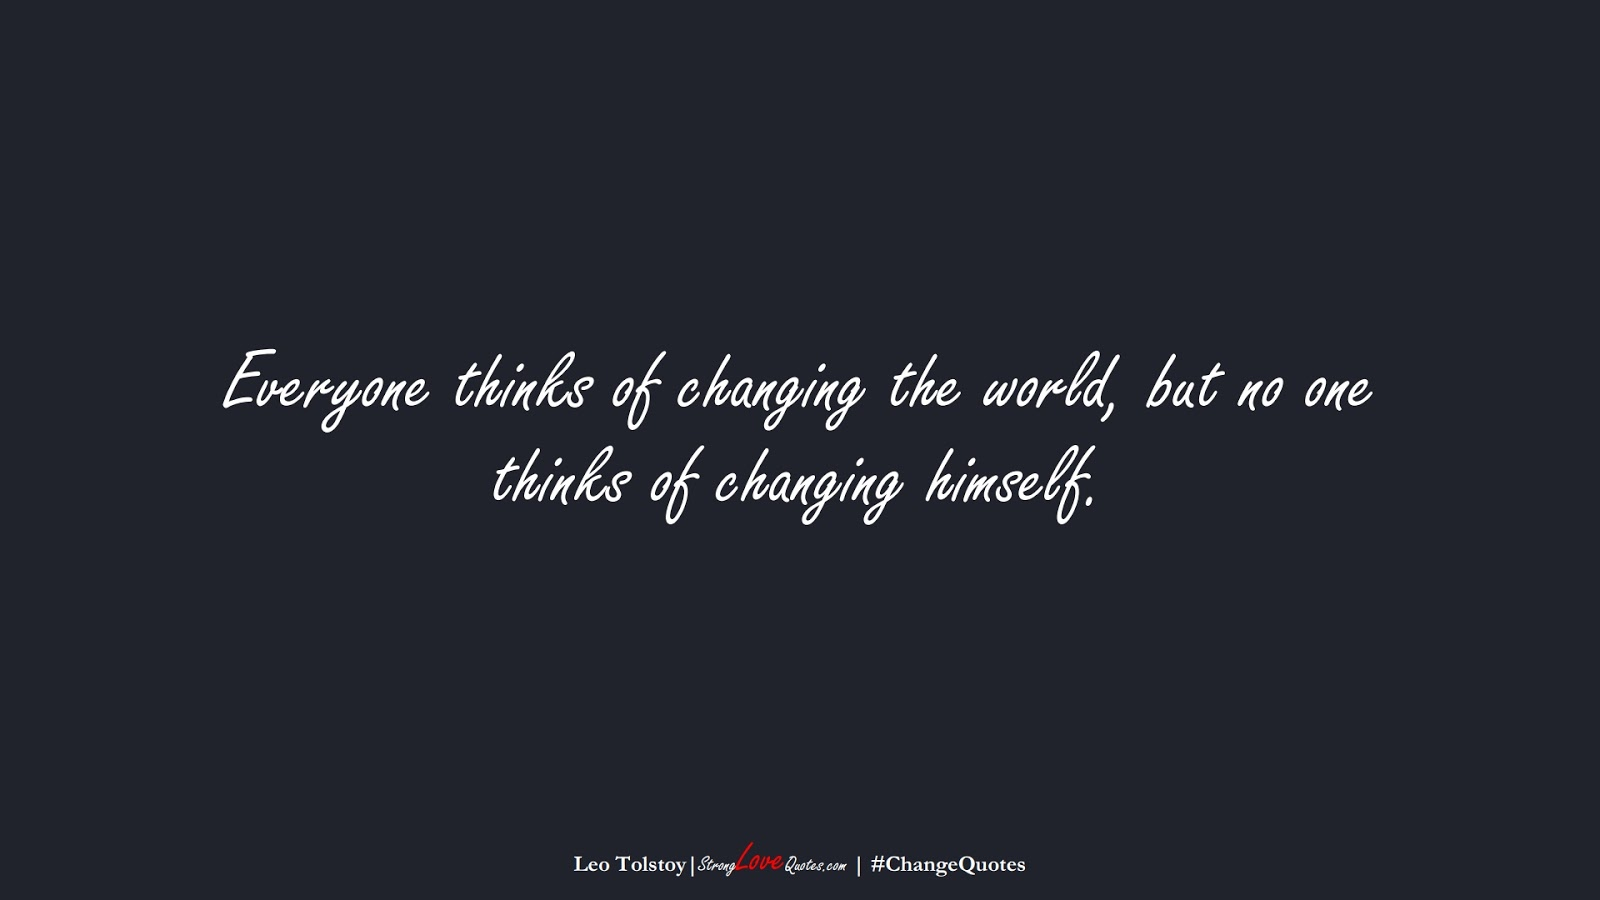 Everyone thinks of changing the world, but no one thinks of changing himself. (Leo Tolstoy);  #ChangeQuotes